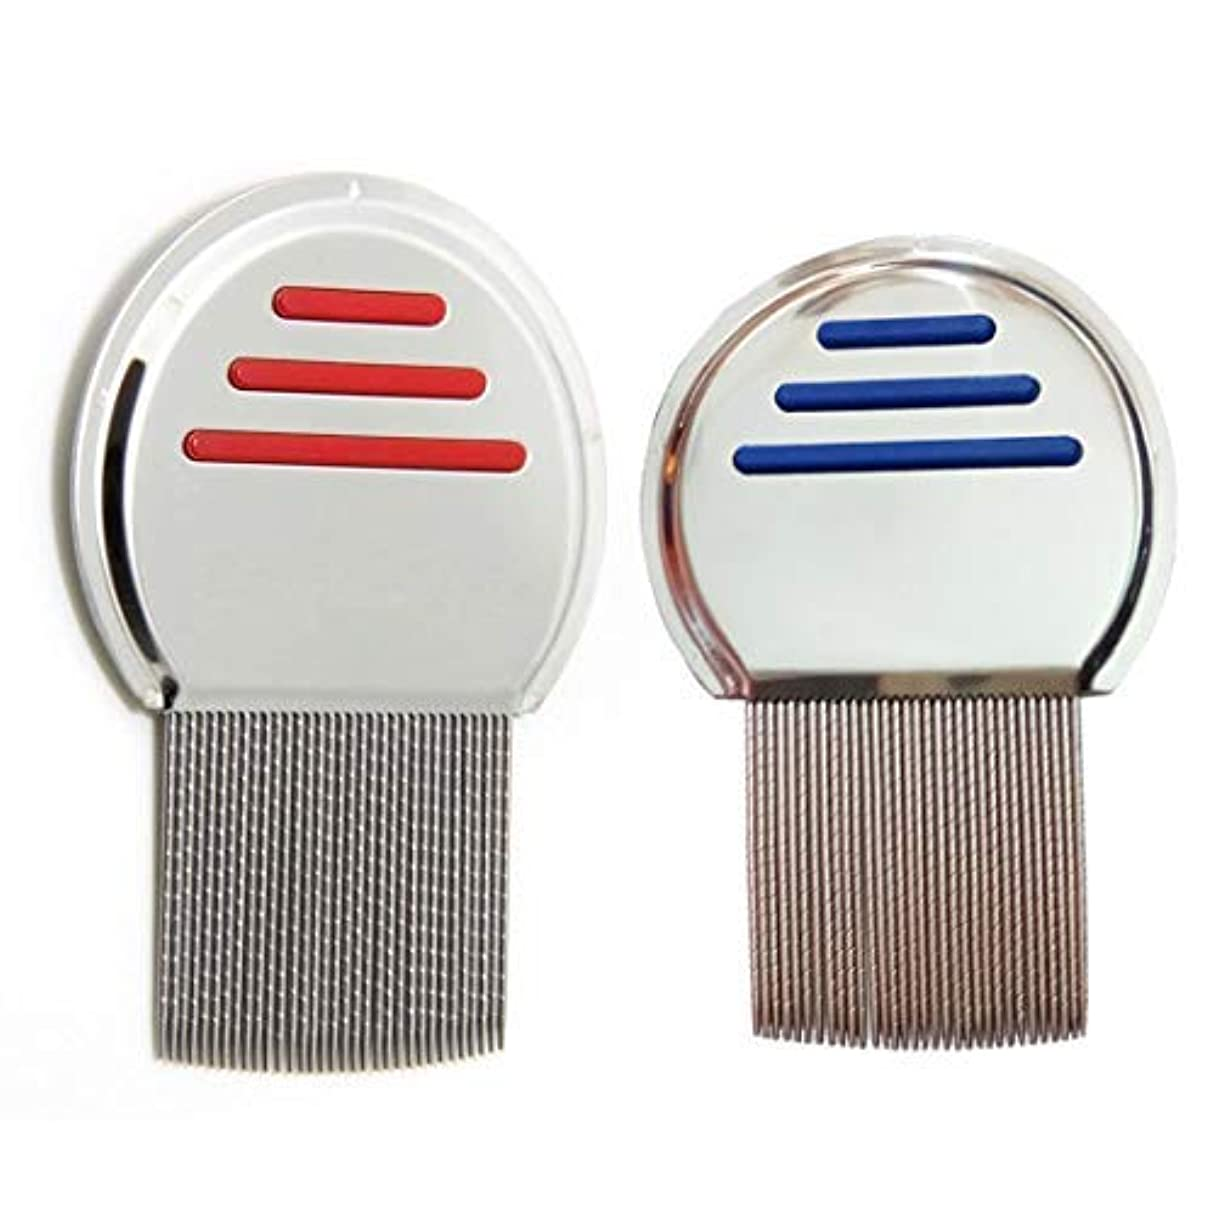 2 Pcs Stainless Steel Lice Dandruff Comb [並行輸入品]